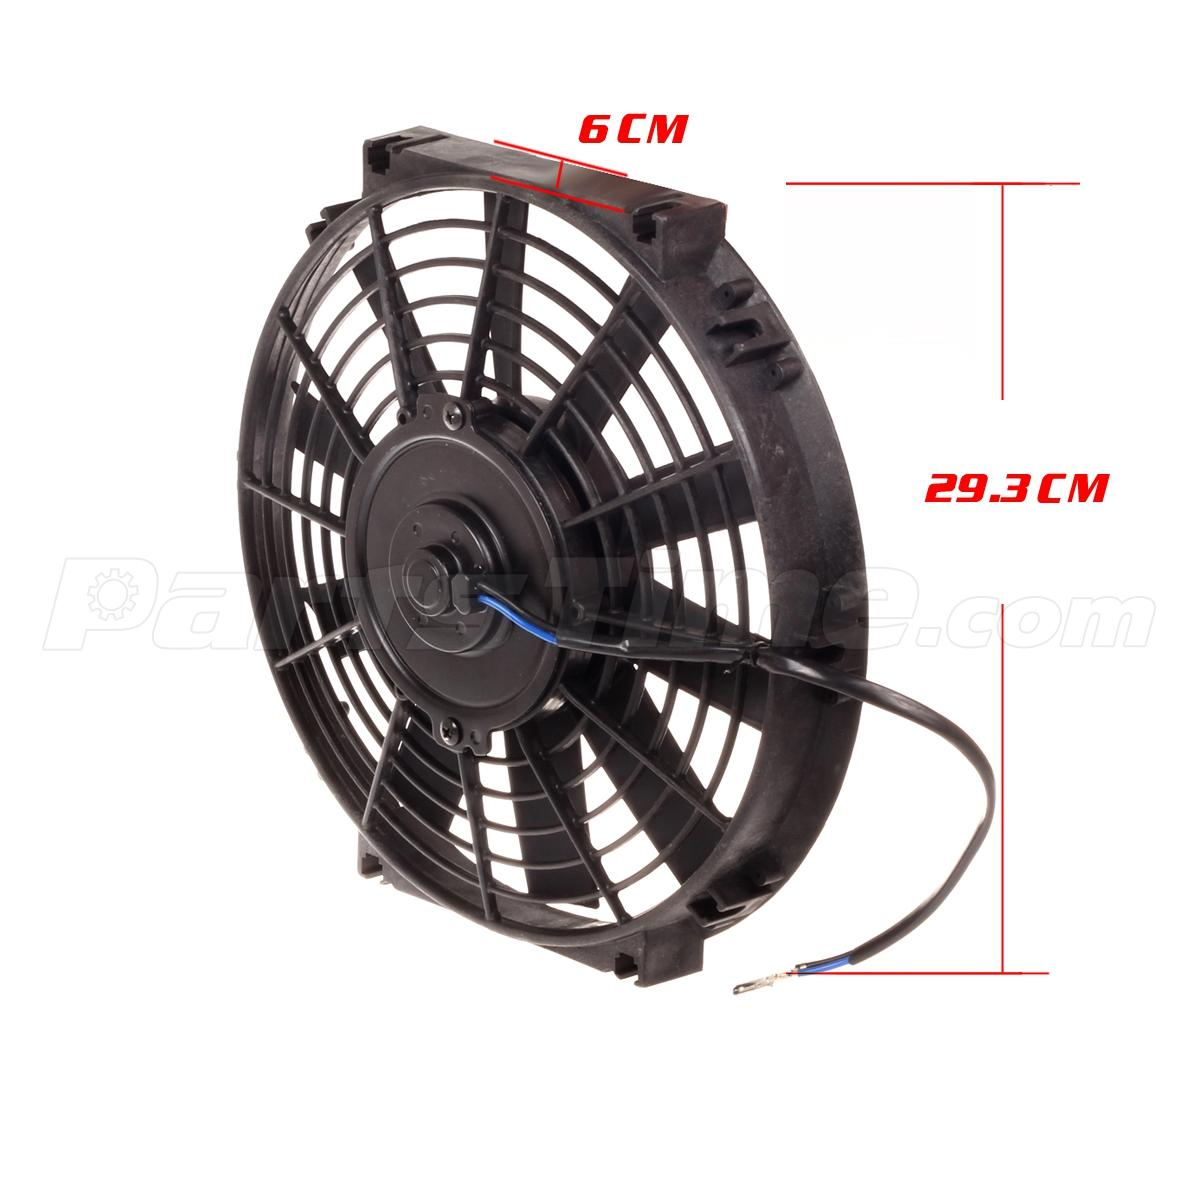 10 inch cooling fan with 200 degree thermostat wiring 50 amp relay kit ebay - Four 200 degres thermostat ...